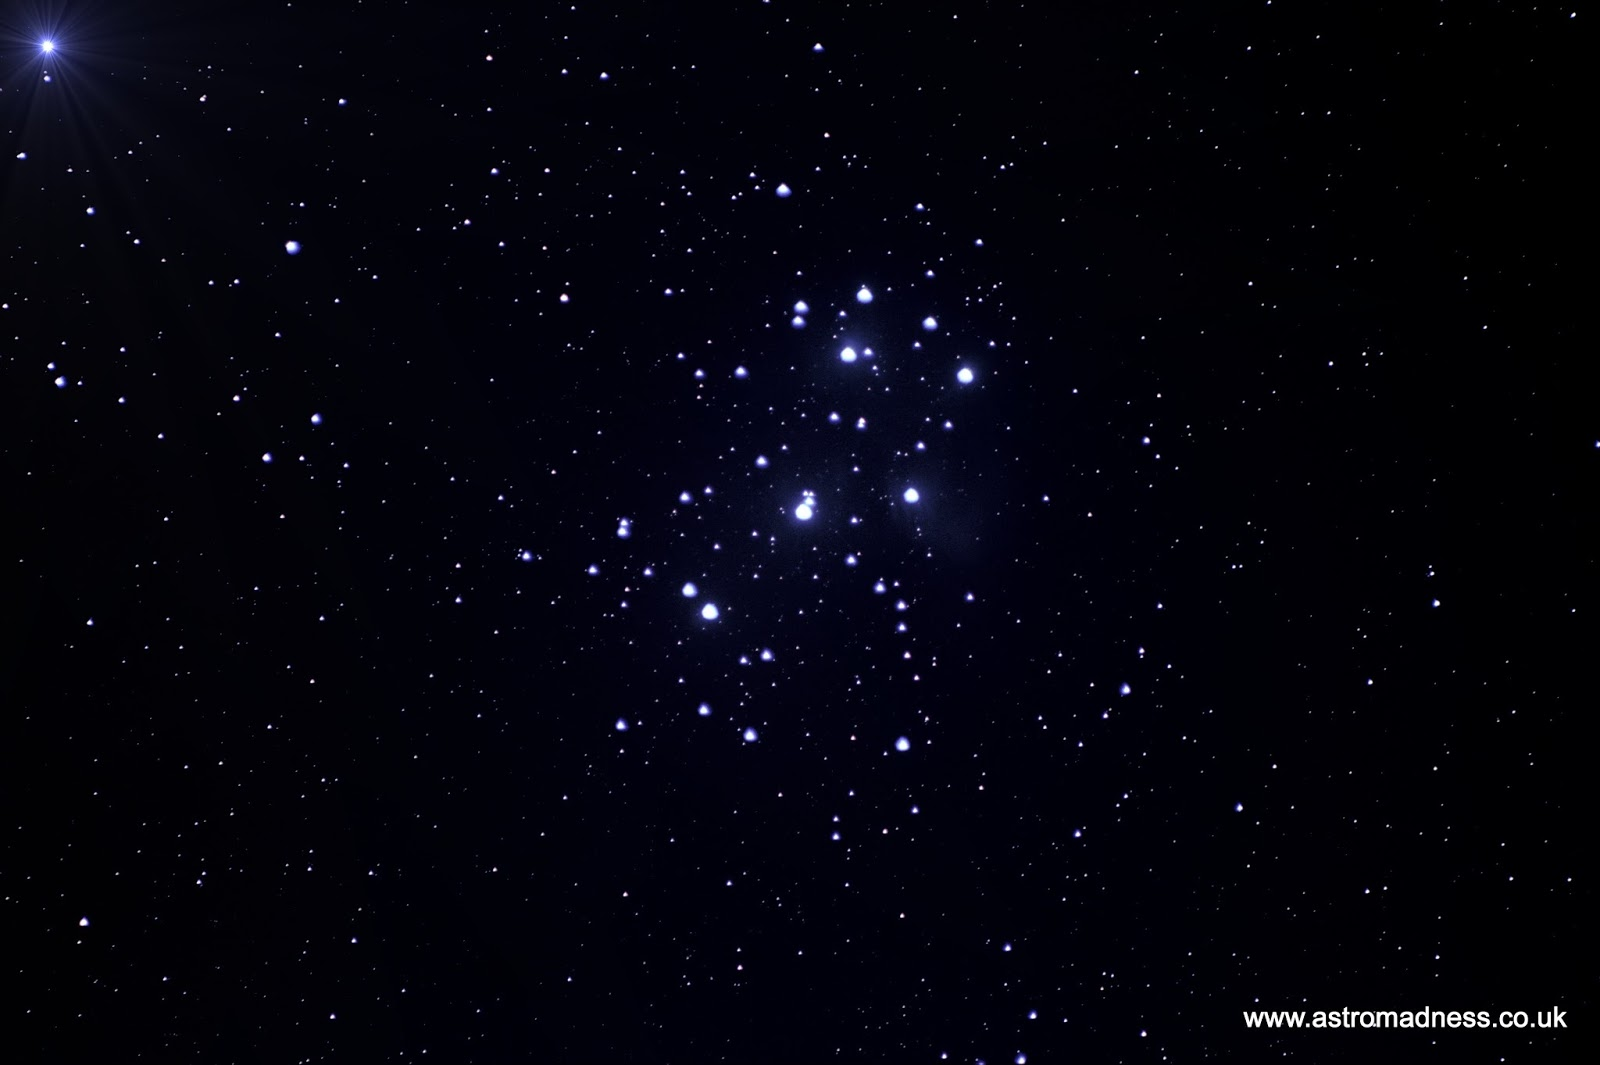 Cassiopeia Observatory - Report